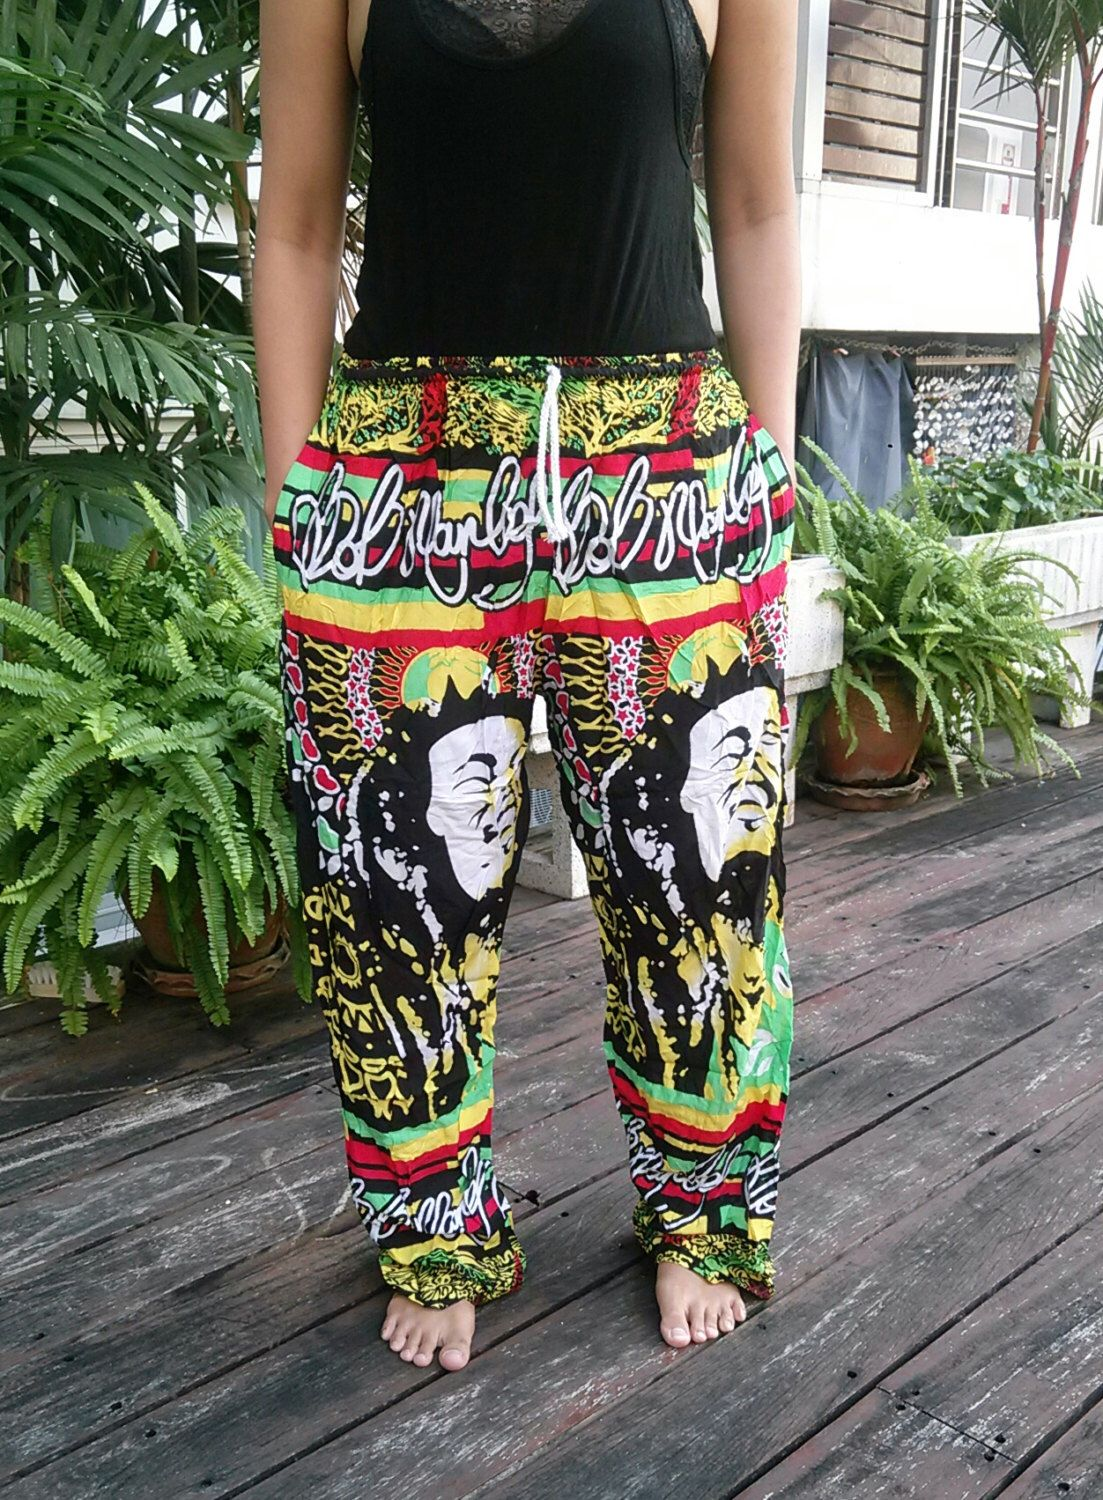 Unisex Reggae Rasta Clothing Rastafari Fashion Print Boho